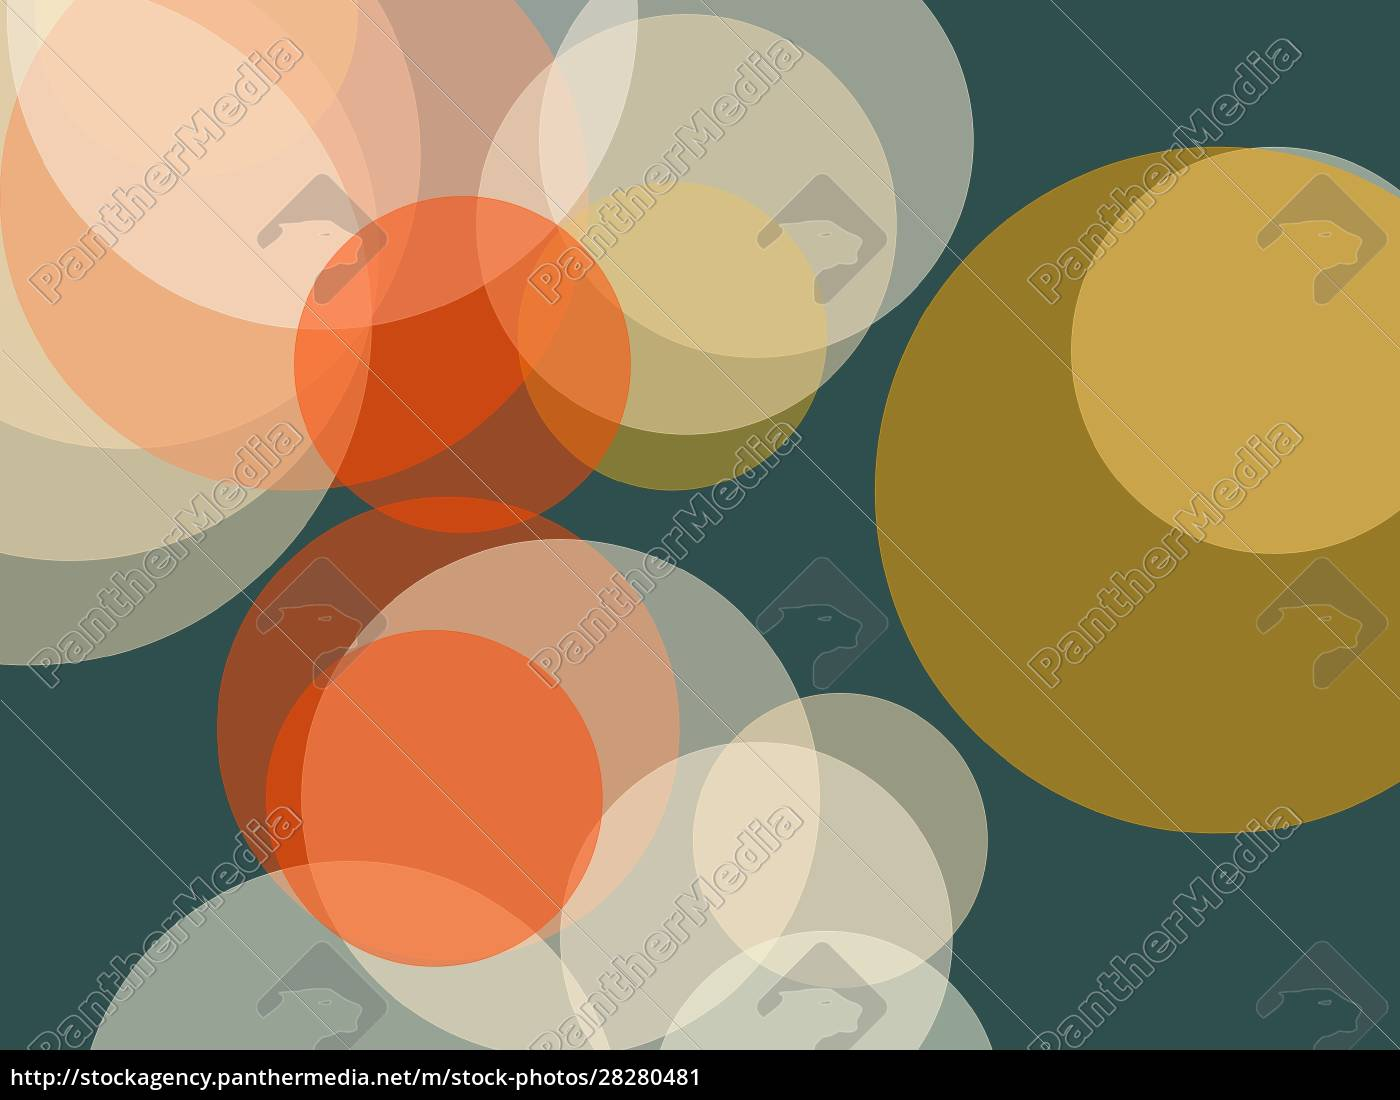 abstract, orange, yellow, circles, illustration, background - 28280481